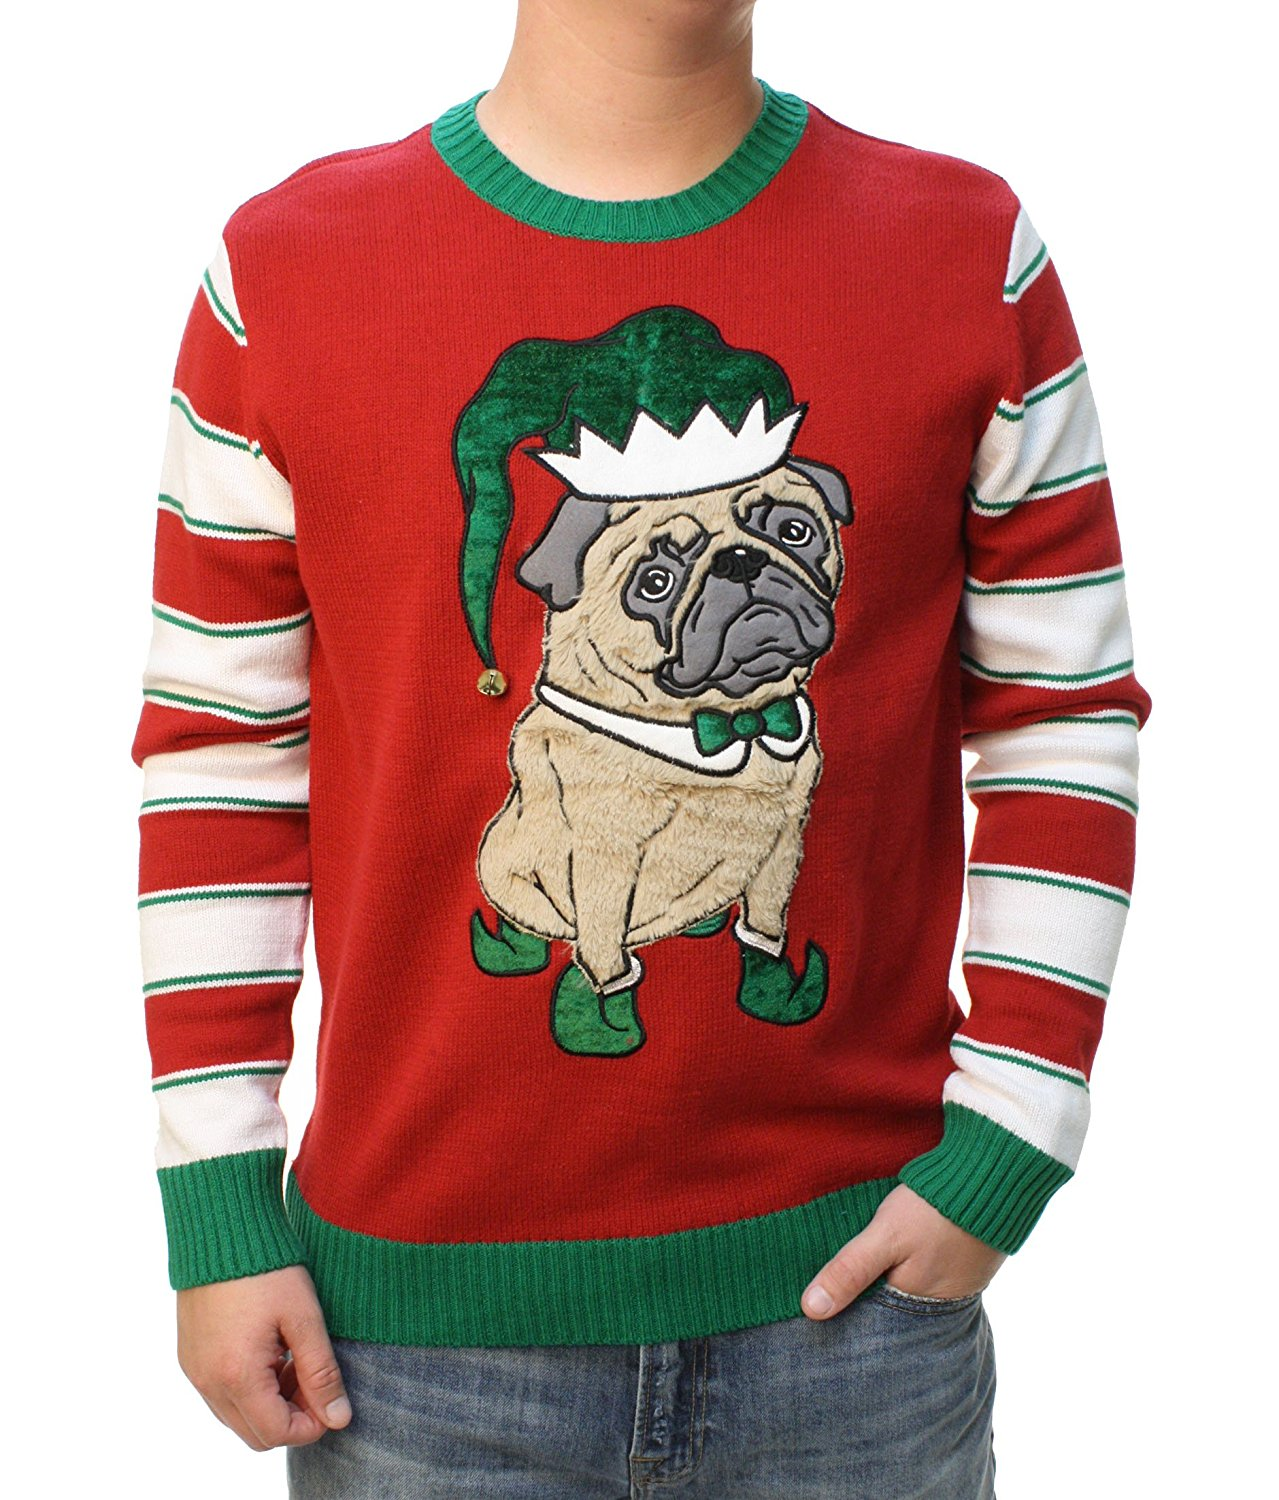 Christmas Sweaters For Men.Details About Ugly Christmas Sweater Men S 3d Party Pug Elf Hat With Bell Pullover Sweatshirt